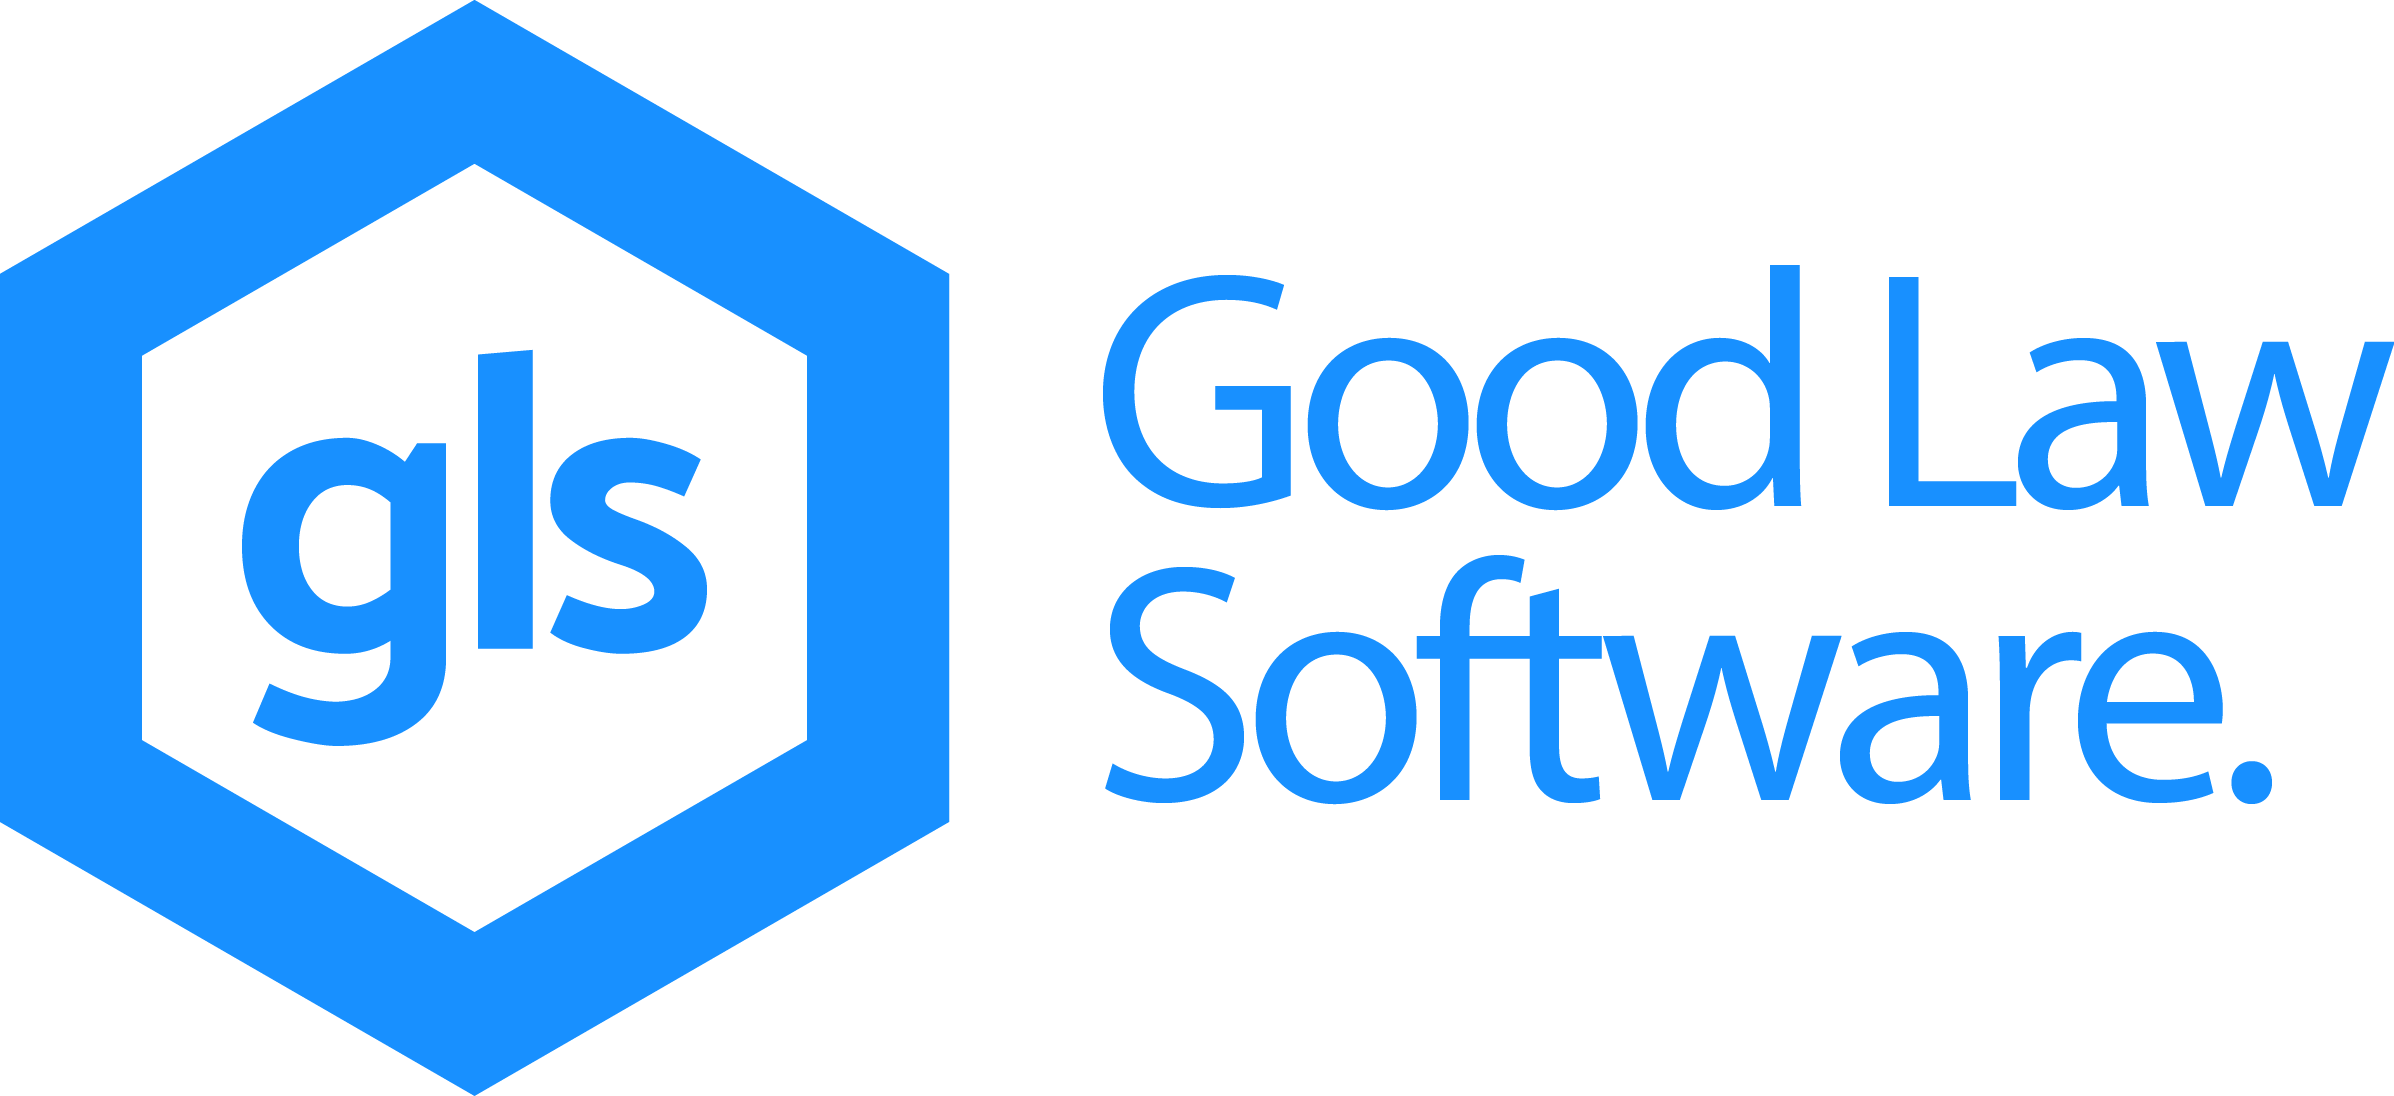 GOOD LAW SOFTWARE